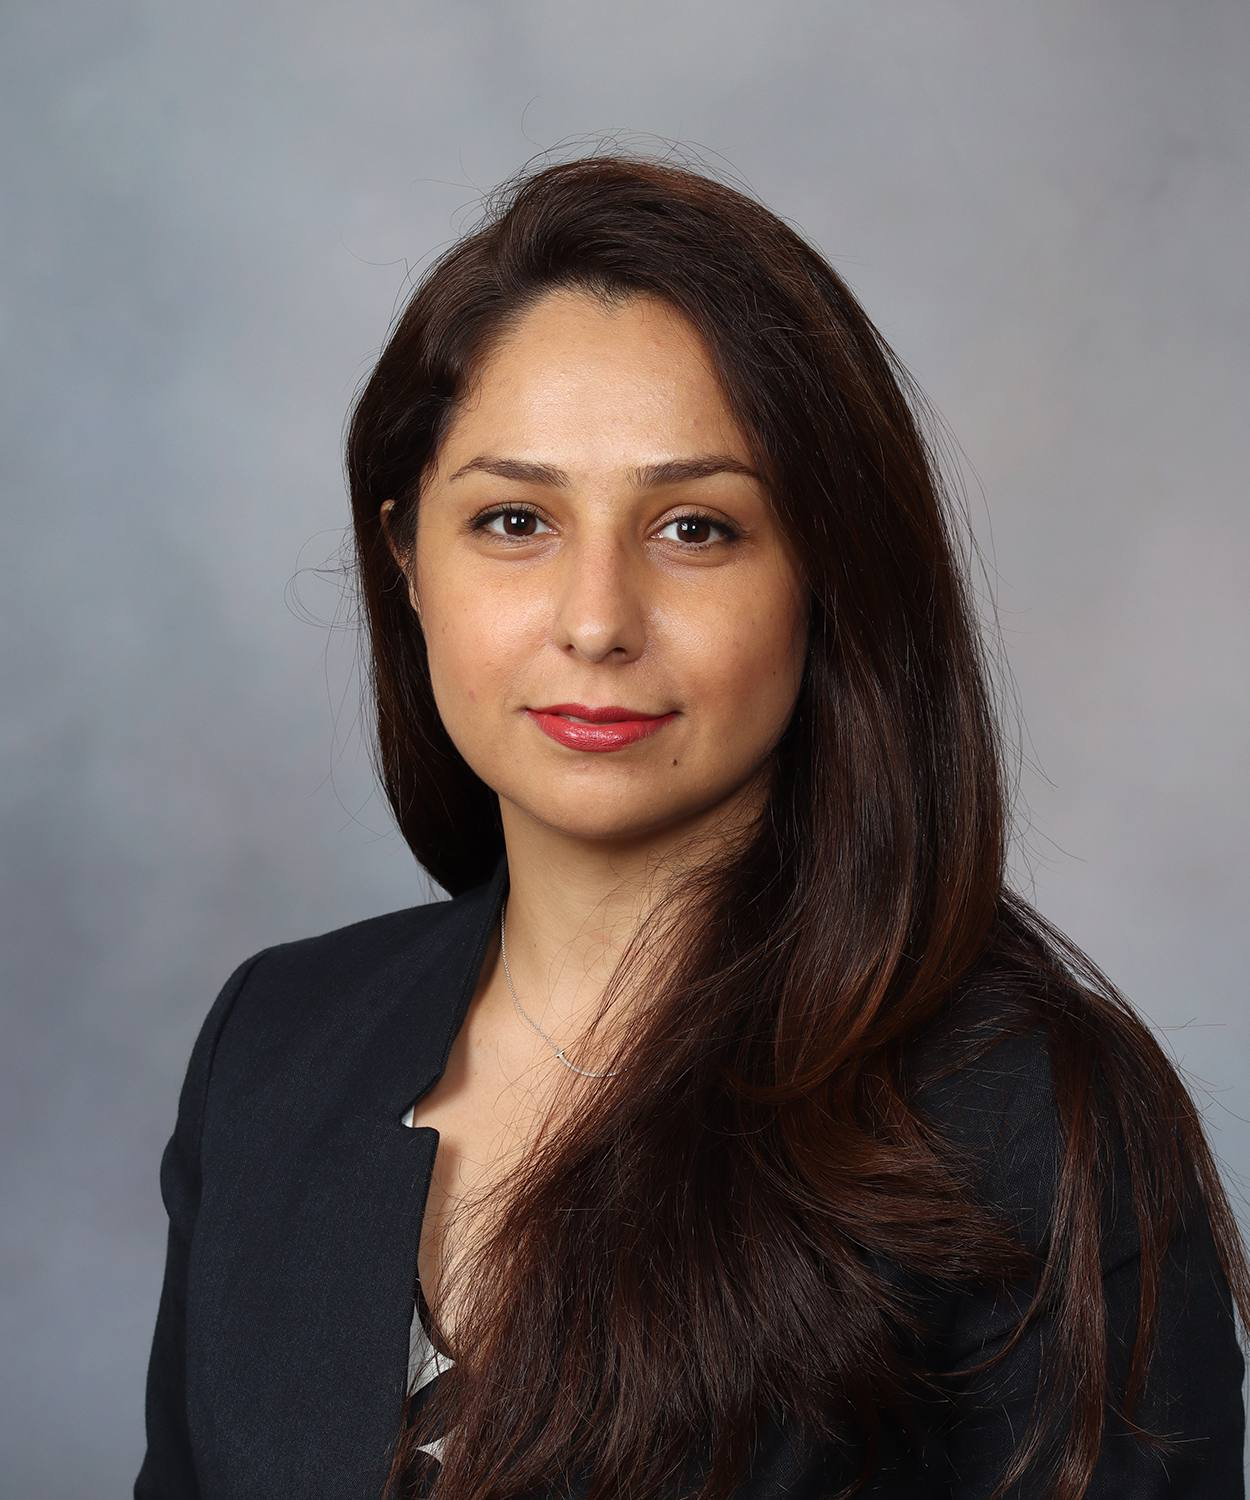 Photo of Maryam Shahi, M.D.